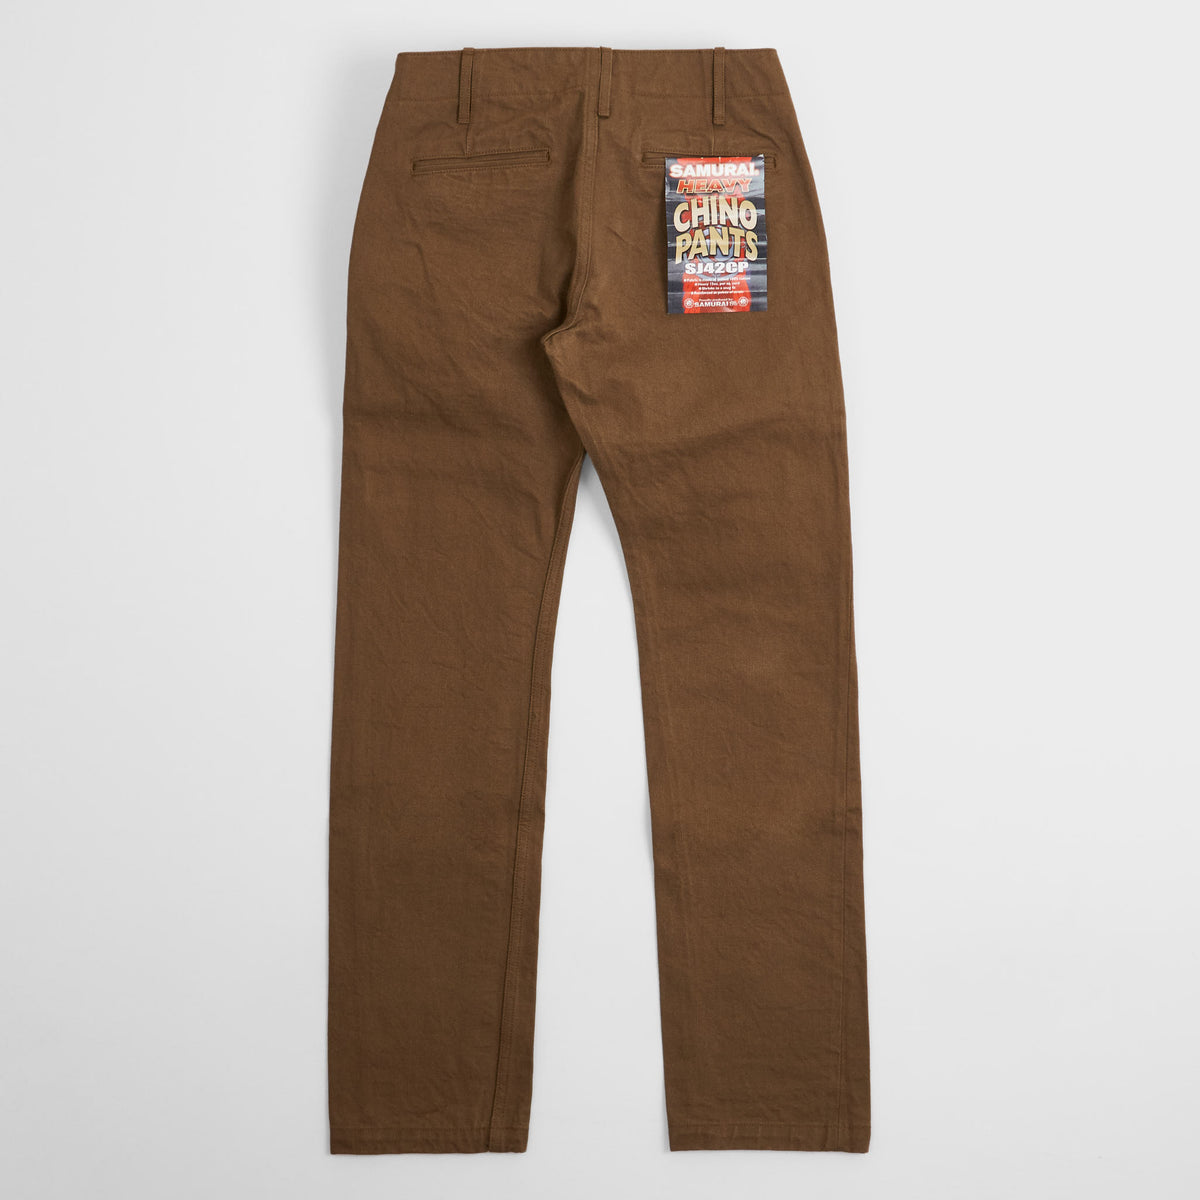 Samurai Jeans Heavy 15oz. Chino Trousers